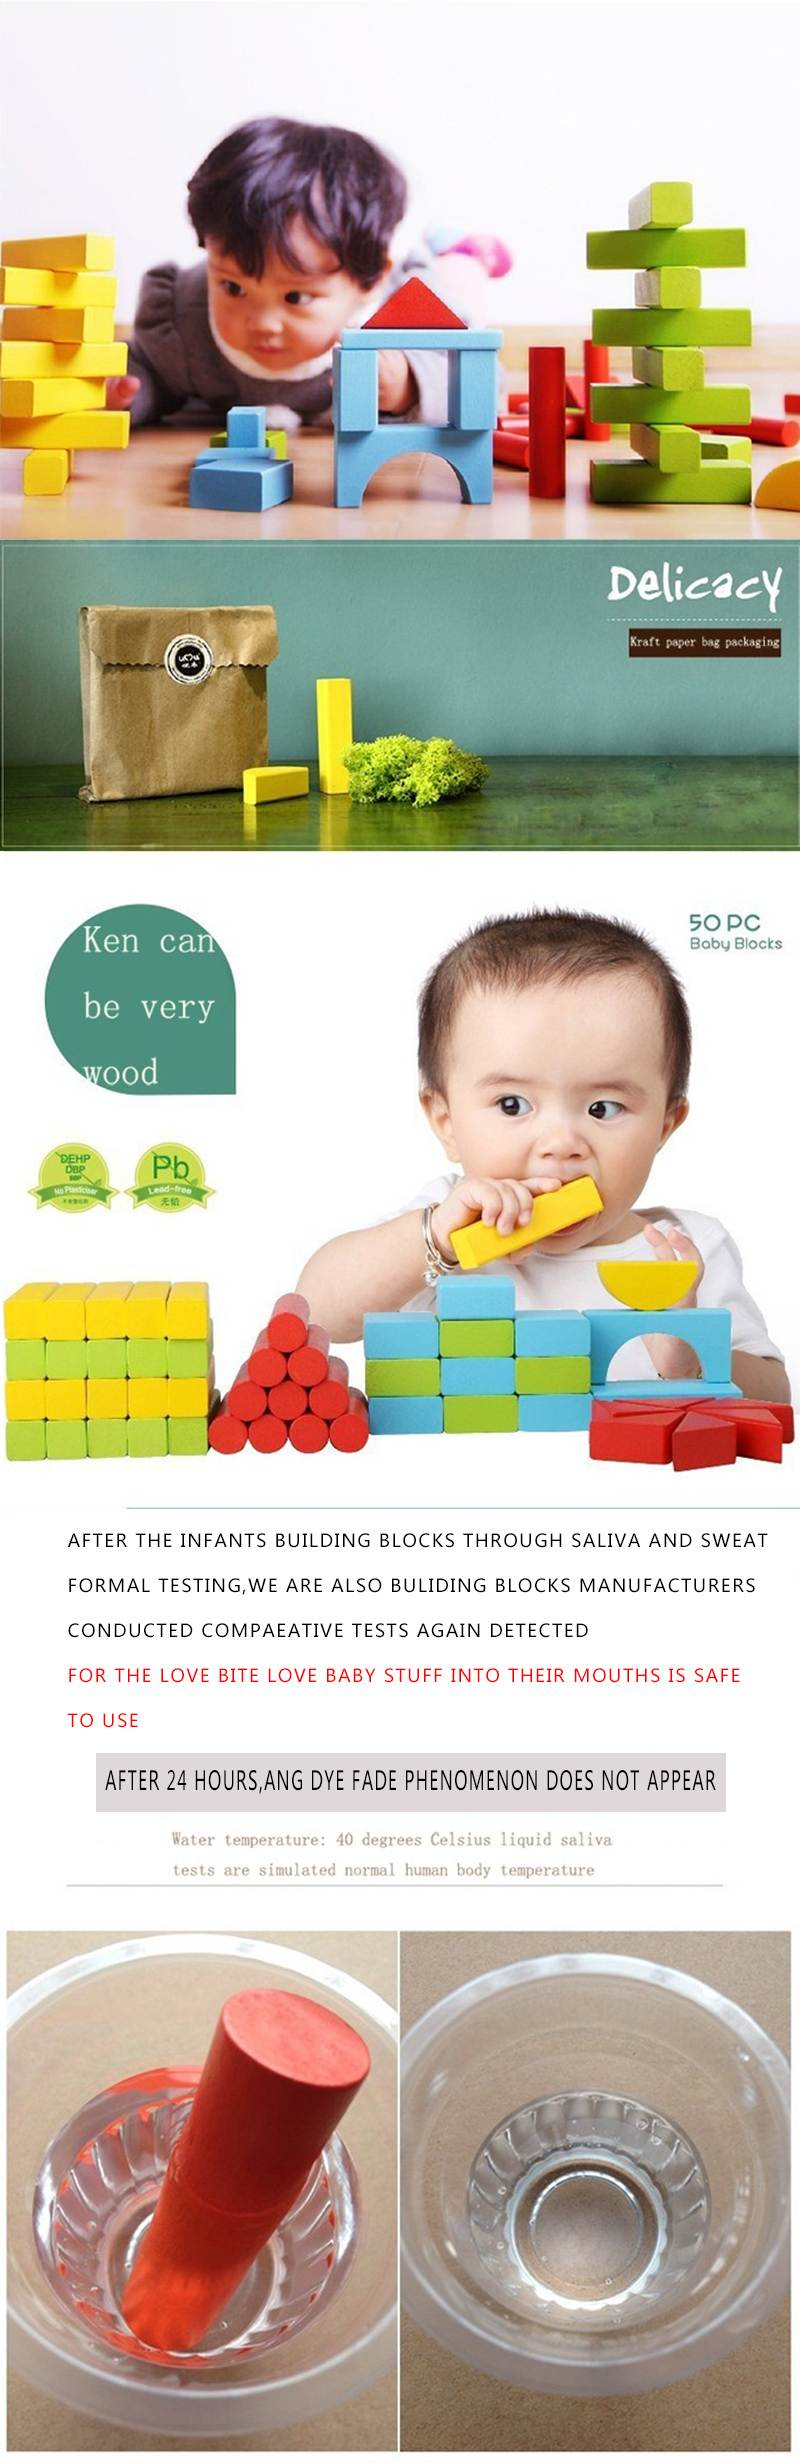 Aliexpress Buy [Umu] 50PCS Wooden Building Blocks Children s